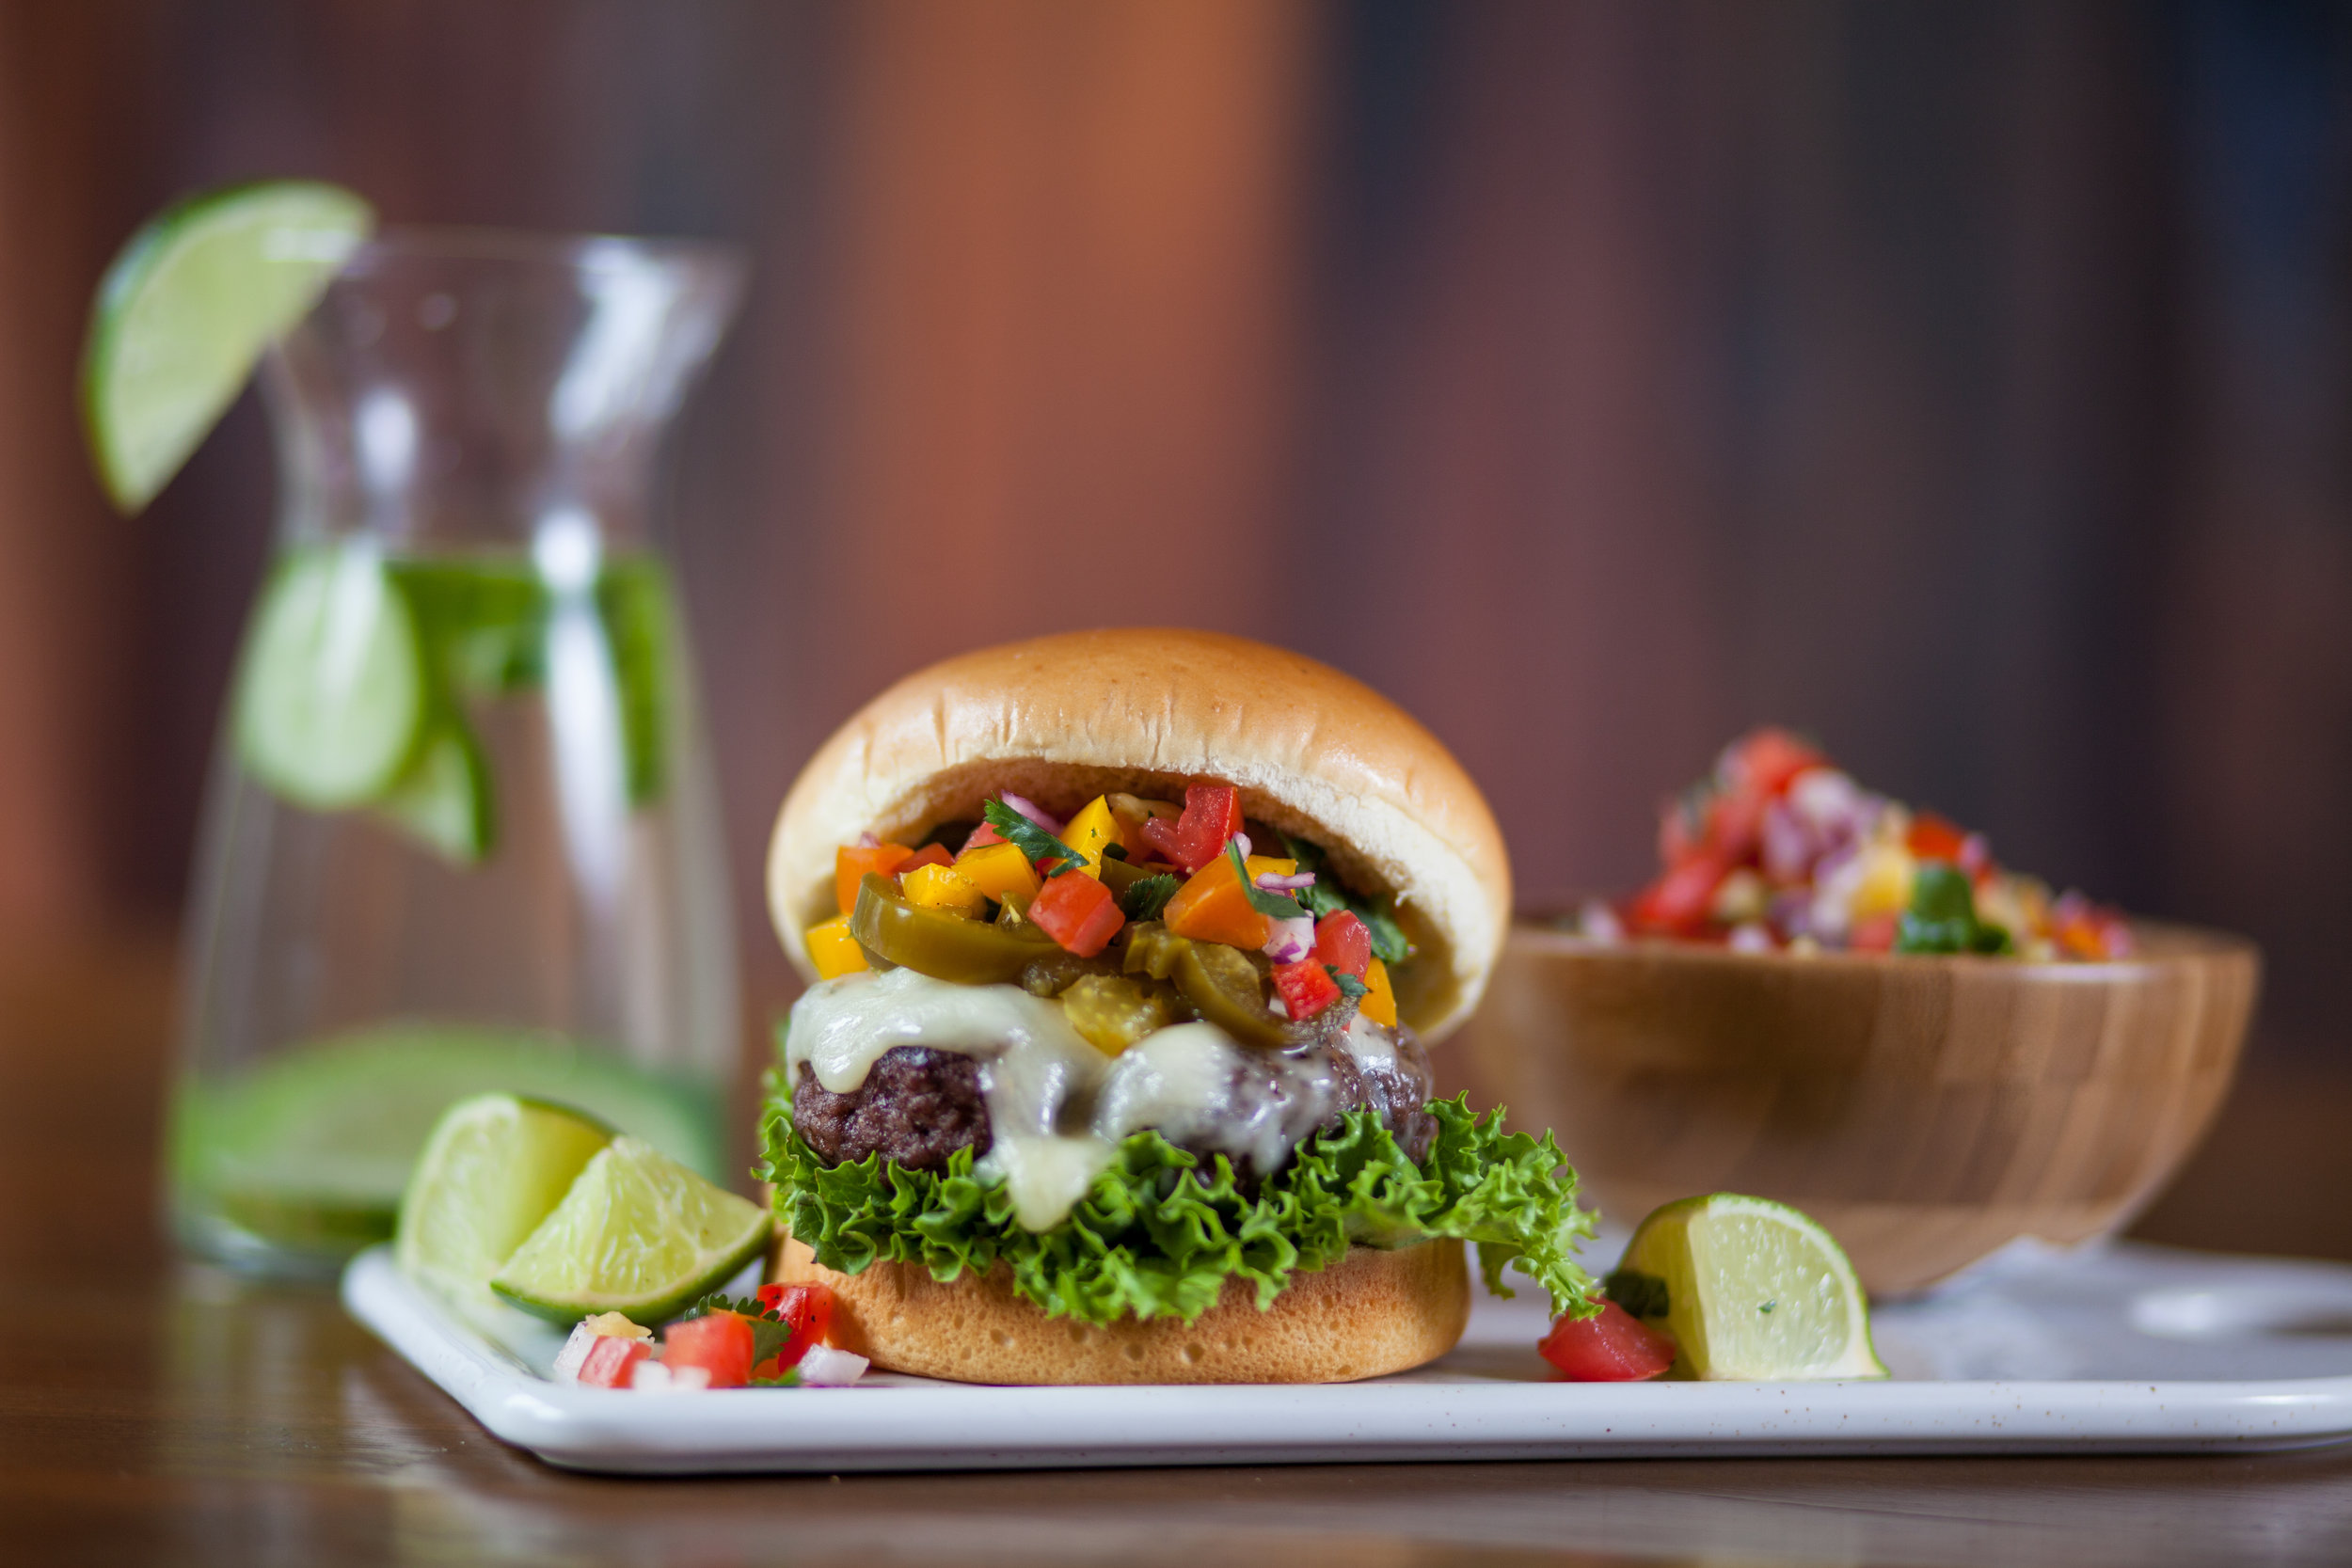 Grilled Jalapeño Pico Burger - Bringing the heat with this burger! The Jalapeño Pico burger isn't for the faint of heart. Fresh jalapeño slices and pico de gallo make this a very fresh treat with a bit of heat.